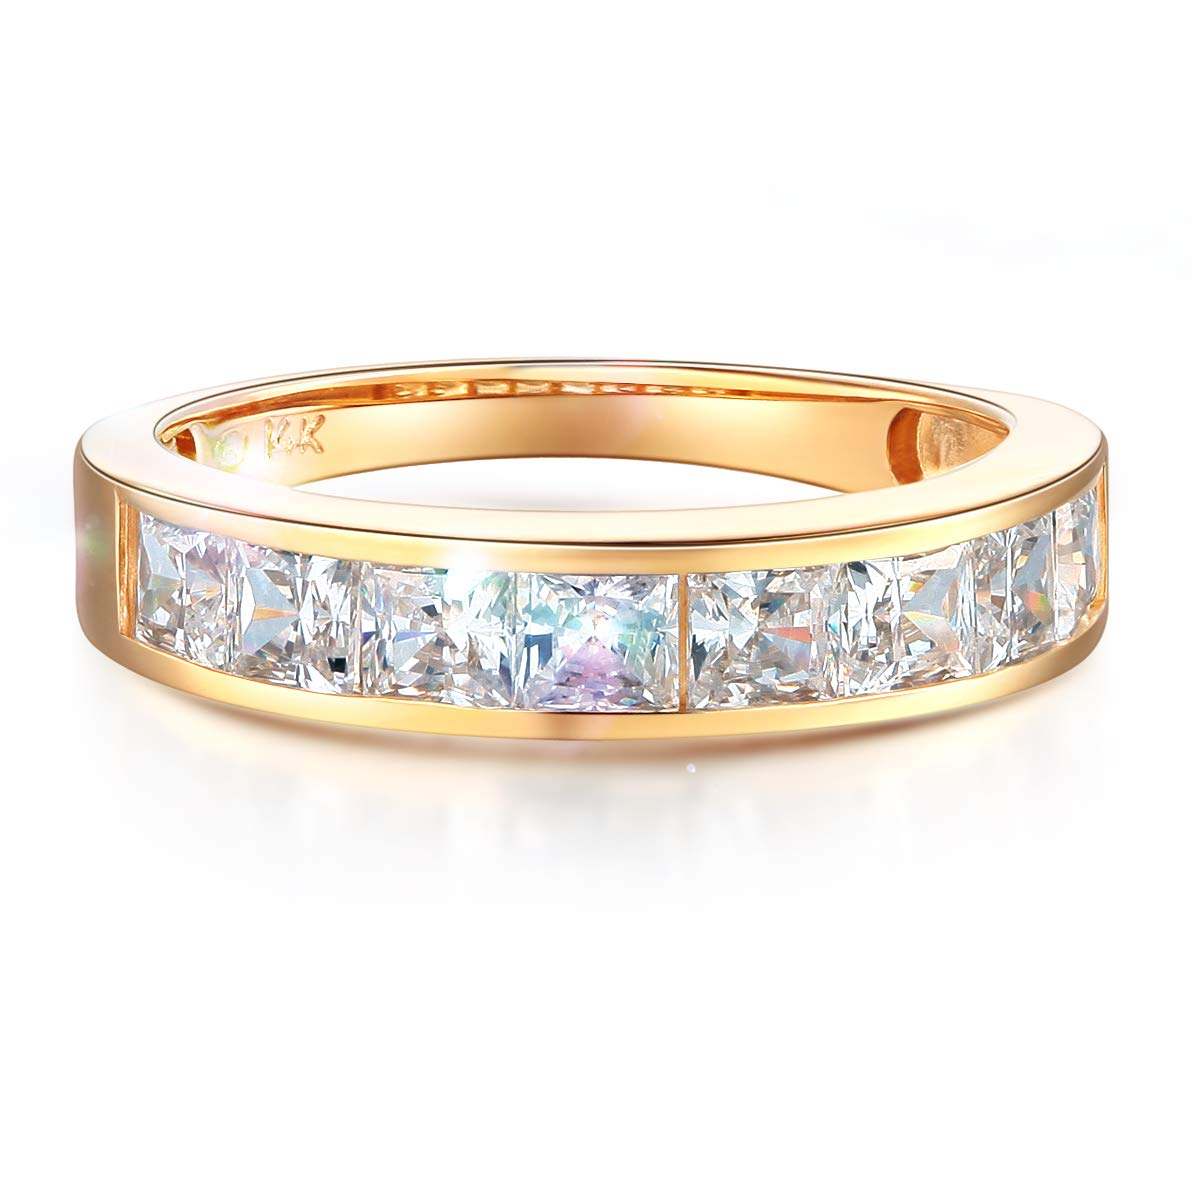 Wellingsale Ladies Solid 14k Yellow Gold CZ Cubic Zirconia Channel Set Wedding Band - Size 7